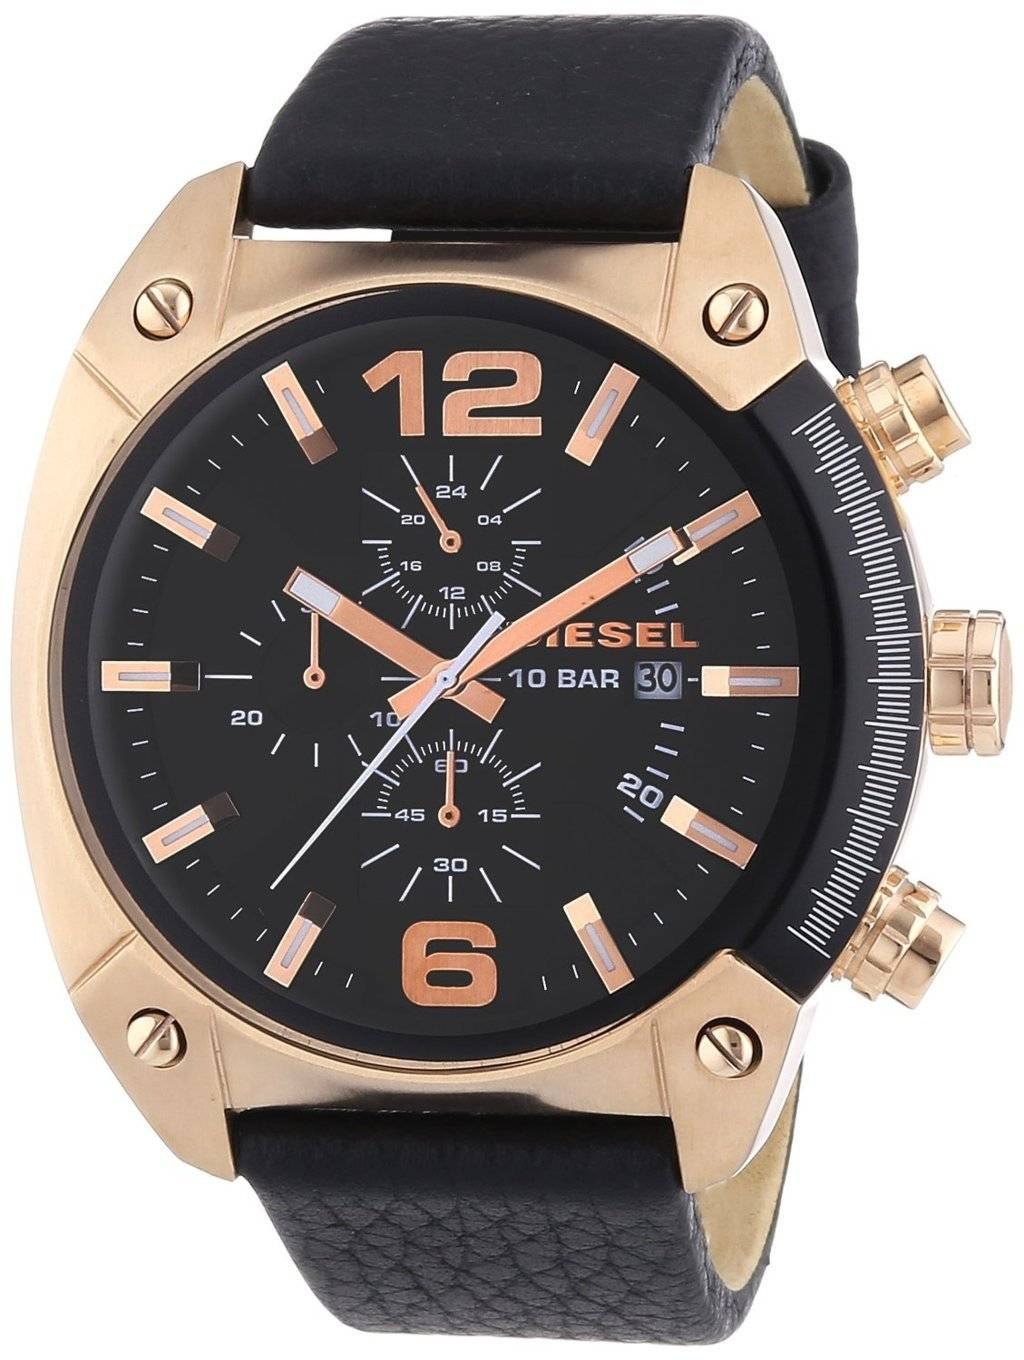 dddbafb64 Diesel Overflow Chronograph Black Dial Black Leather DZ4297 Mens Watch